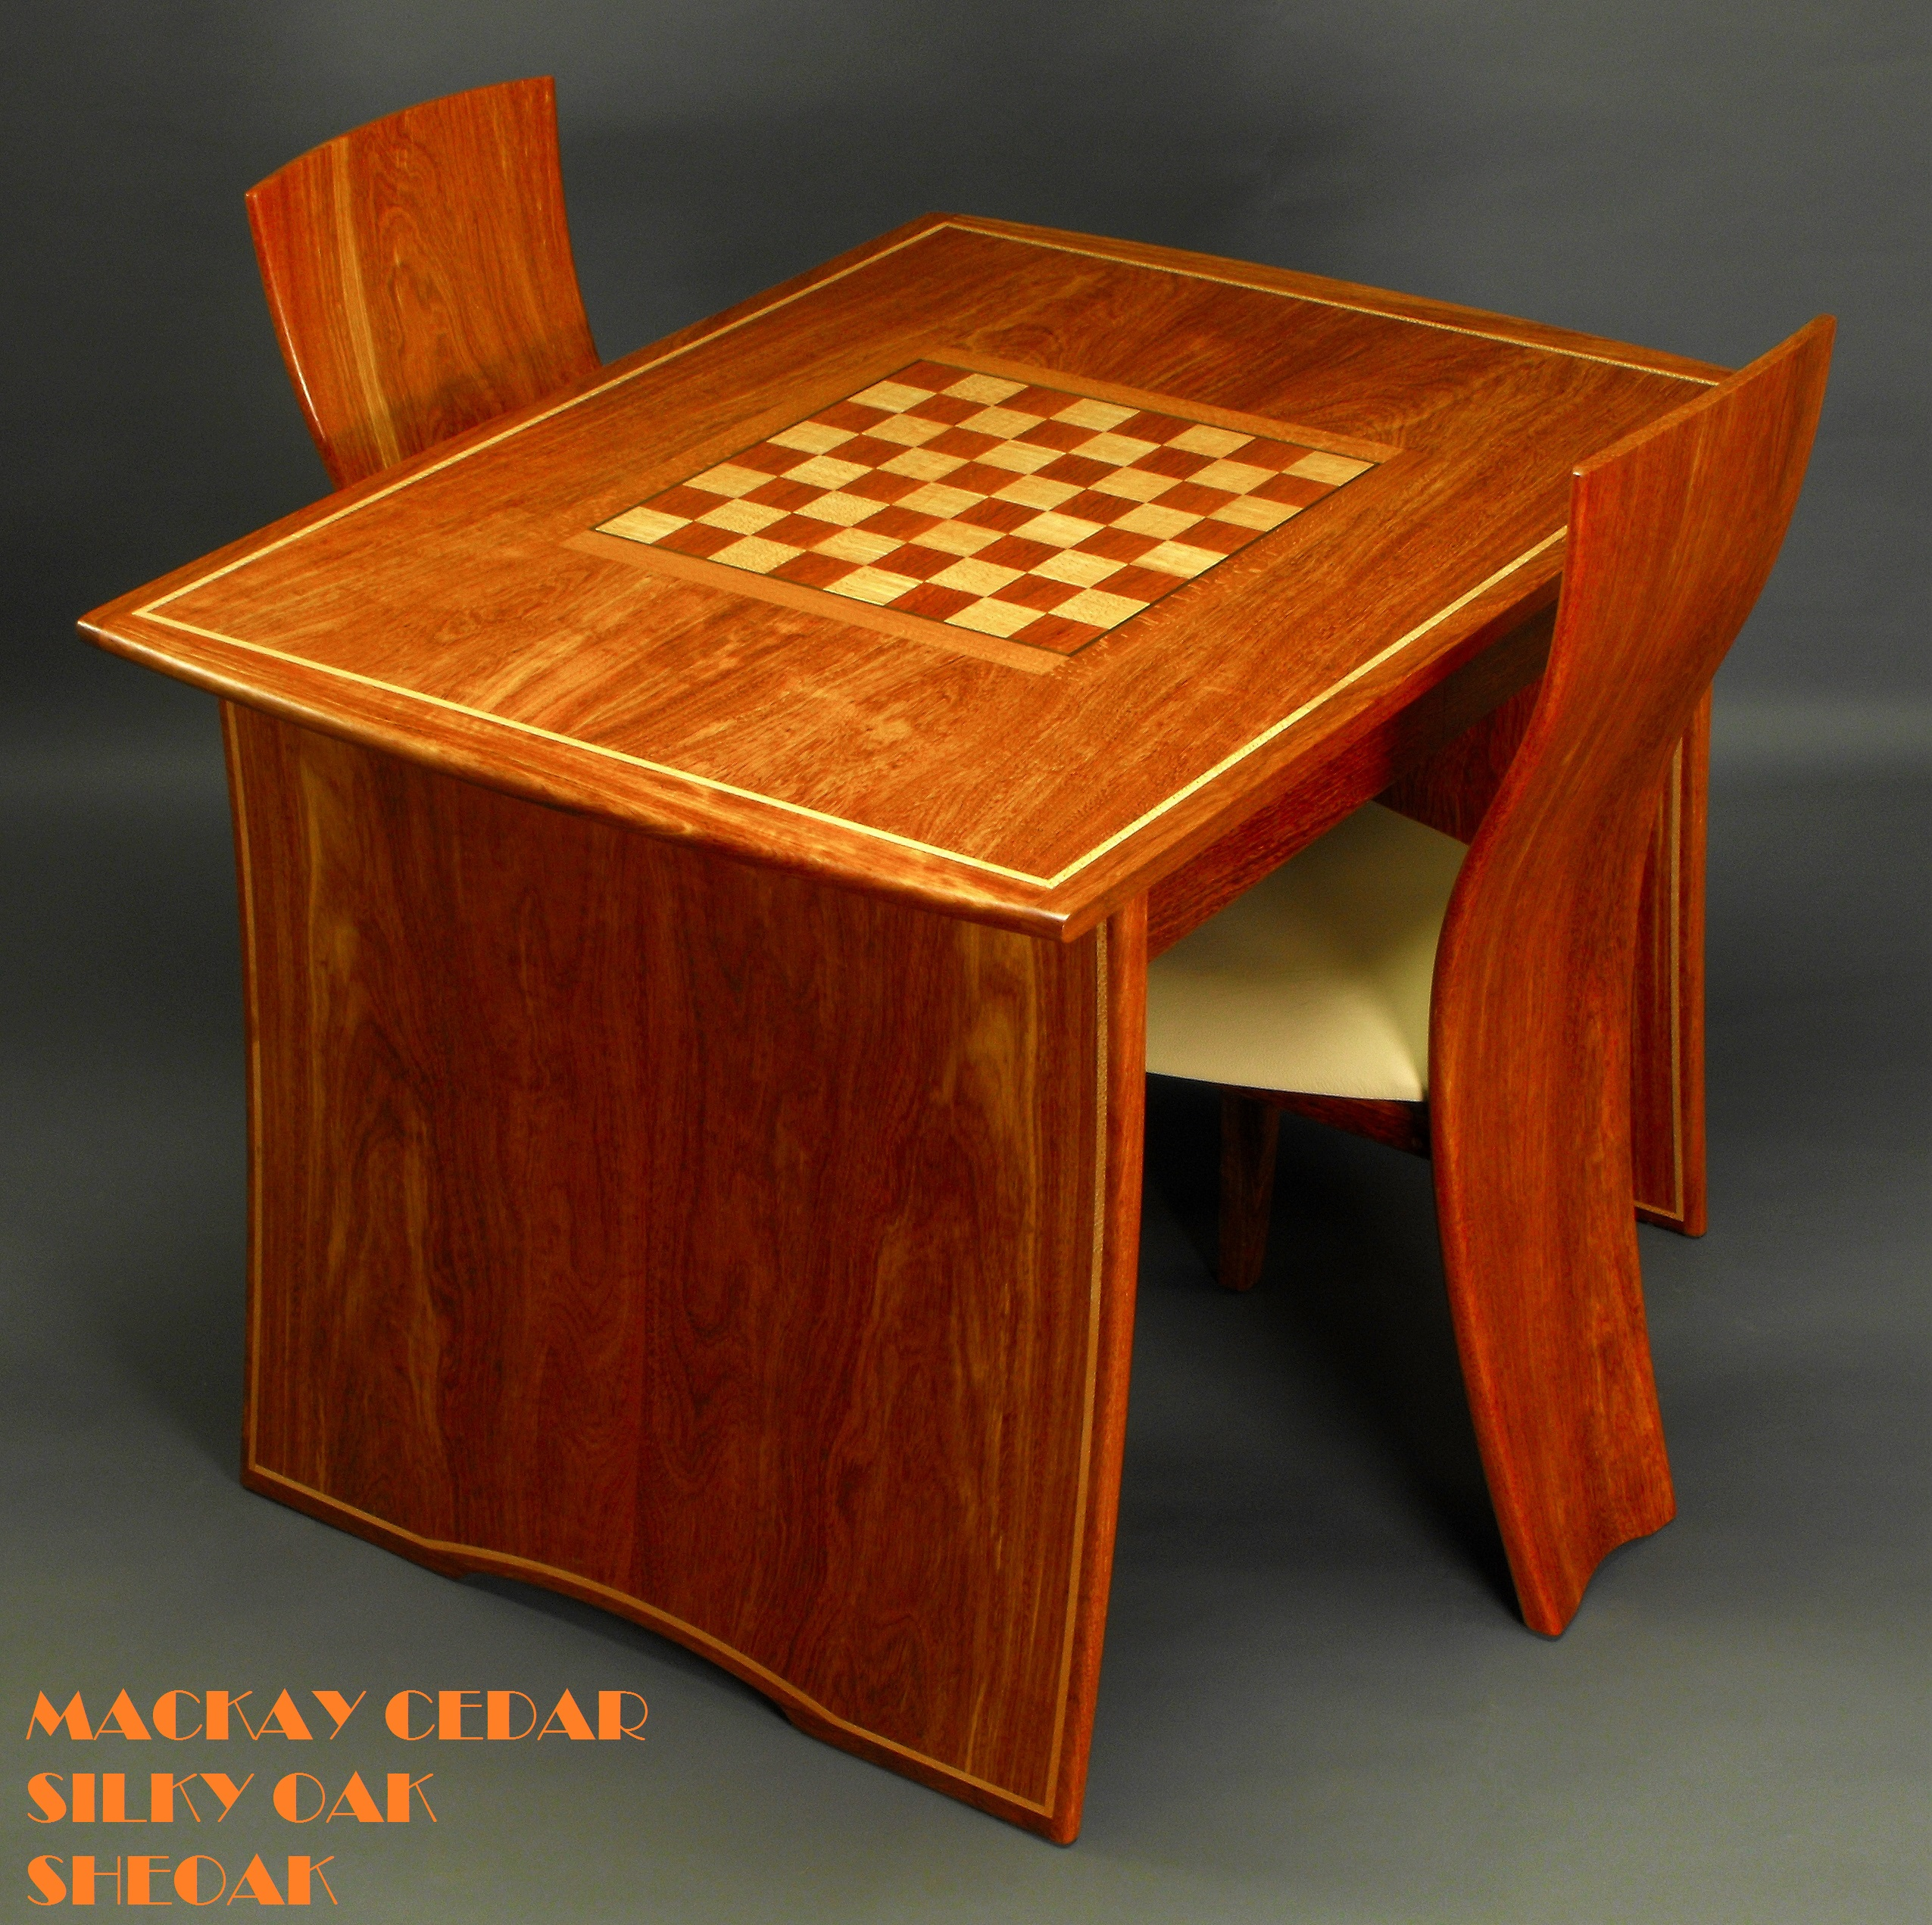 Games Table & Chairs Mackay Cedar 1c-1